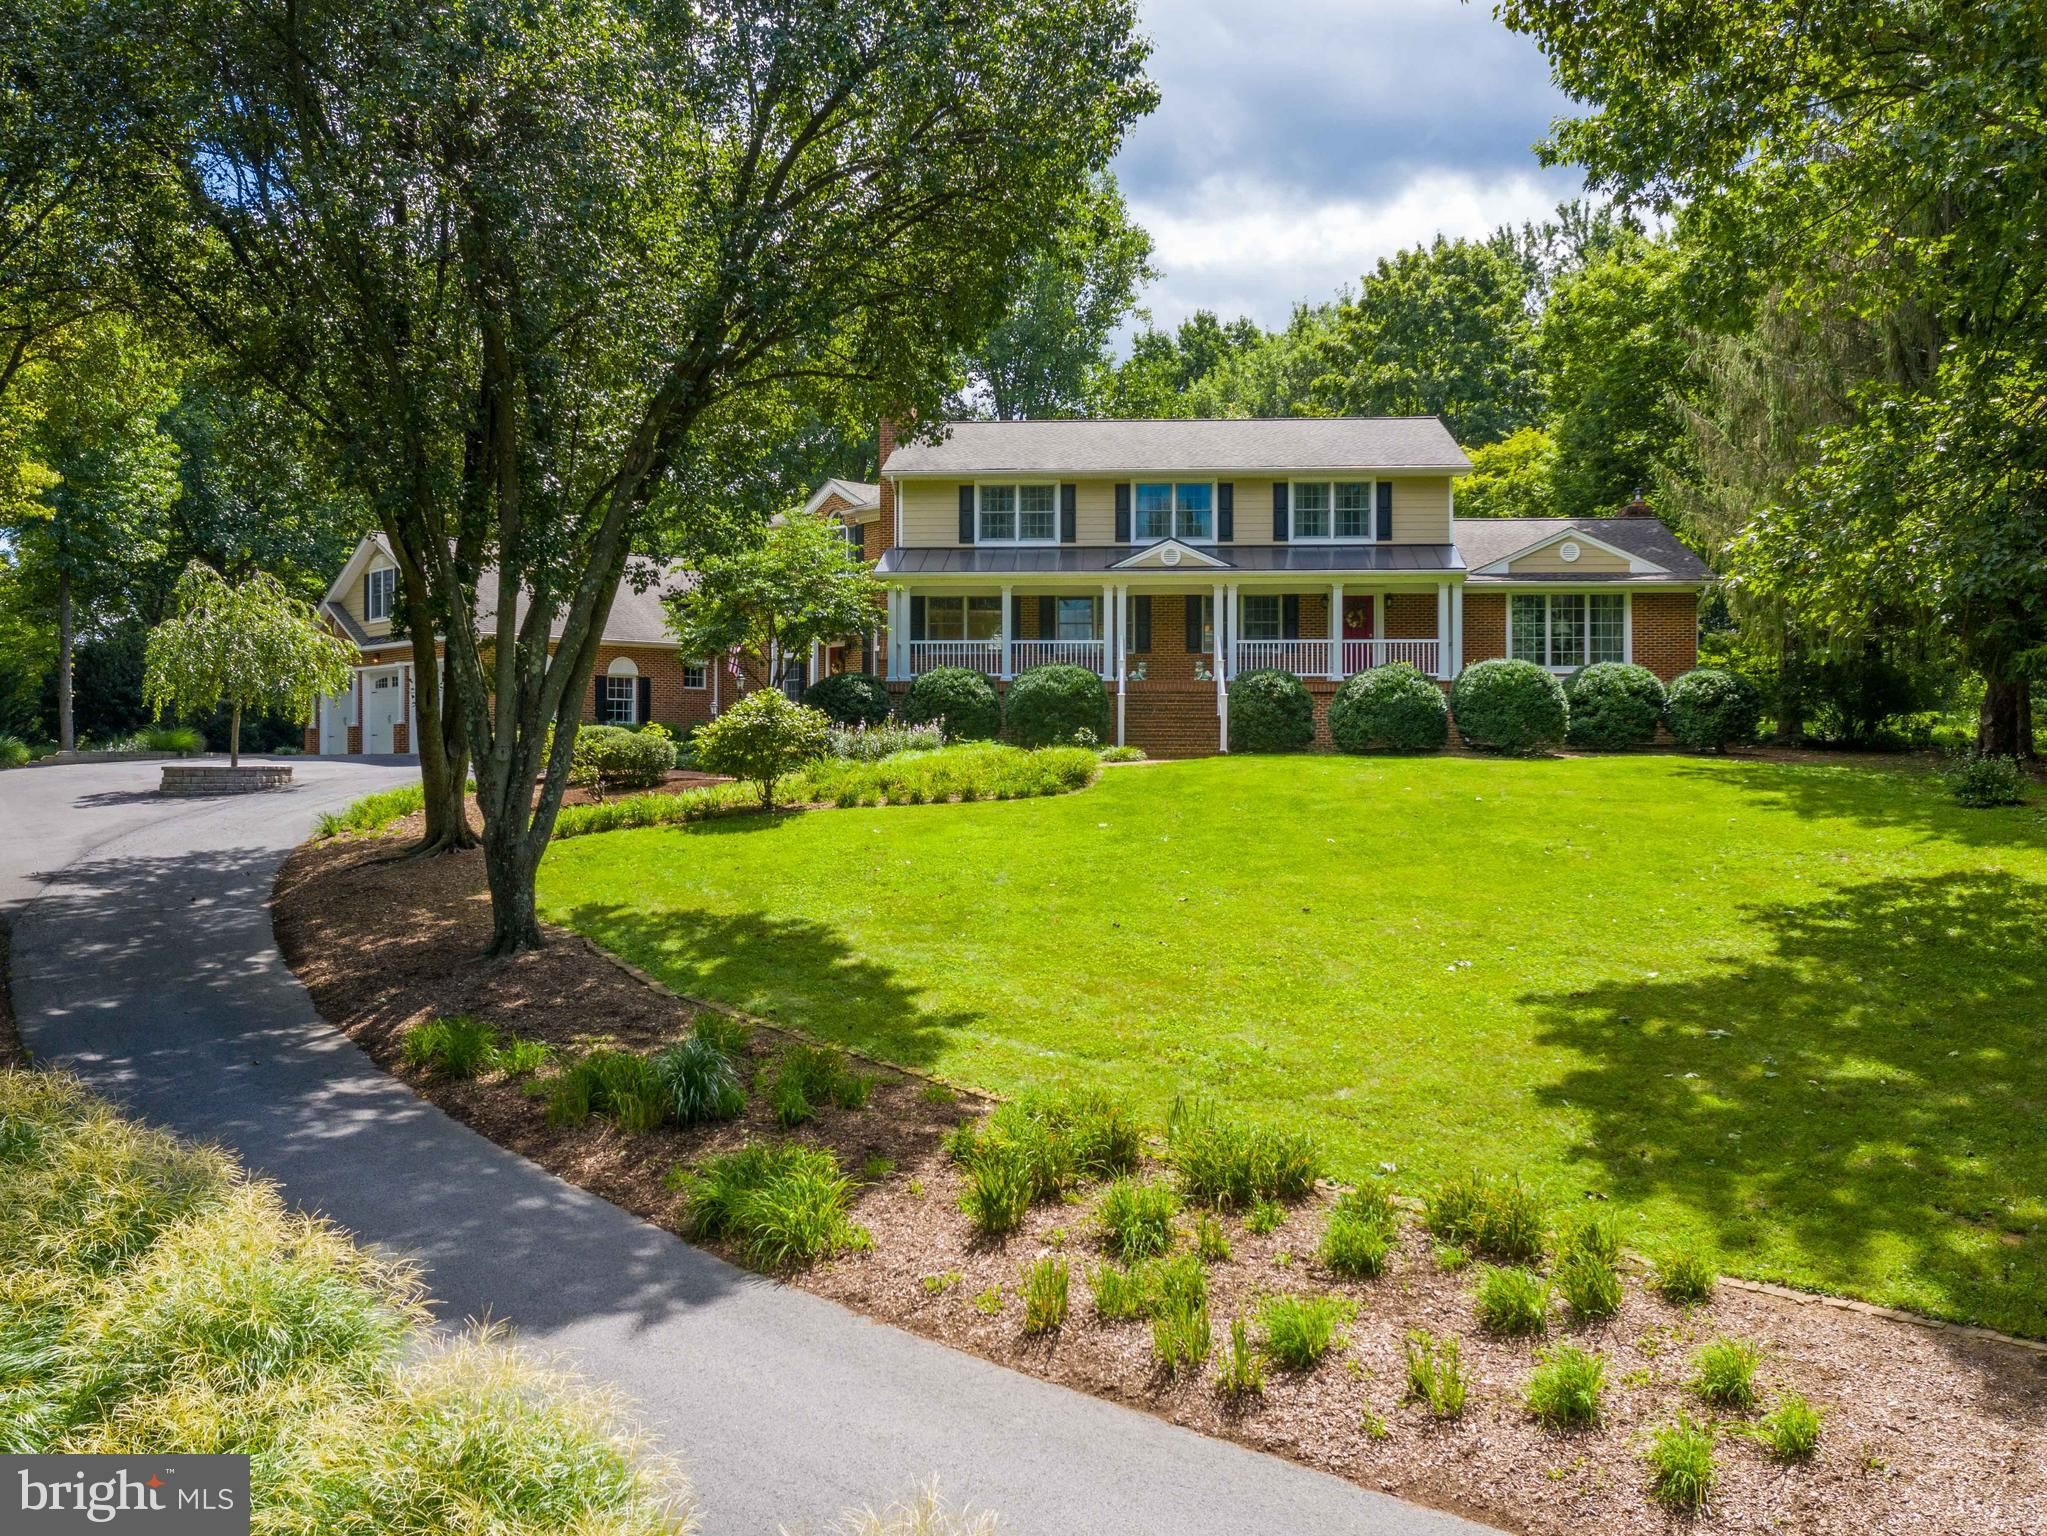 Situated in almost 2 acres of lush, professional landscape and hardscape, this exceptional home is a